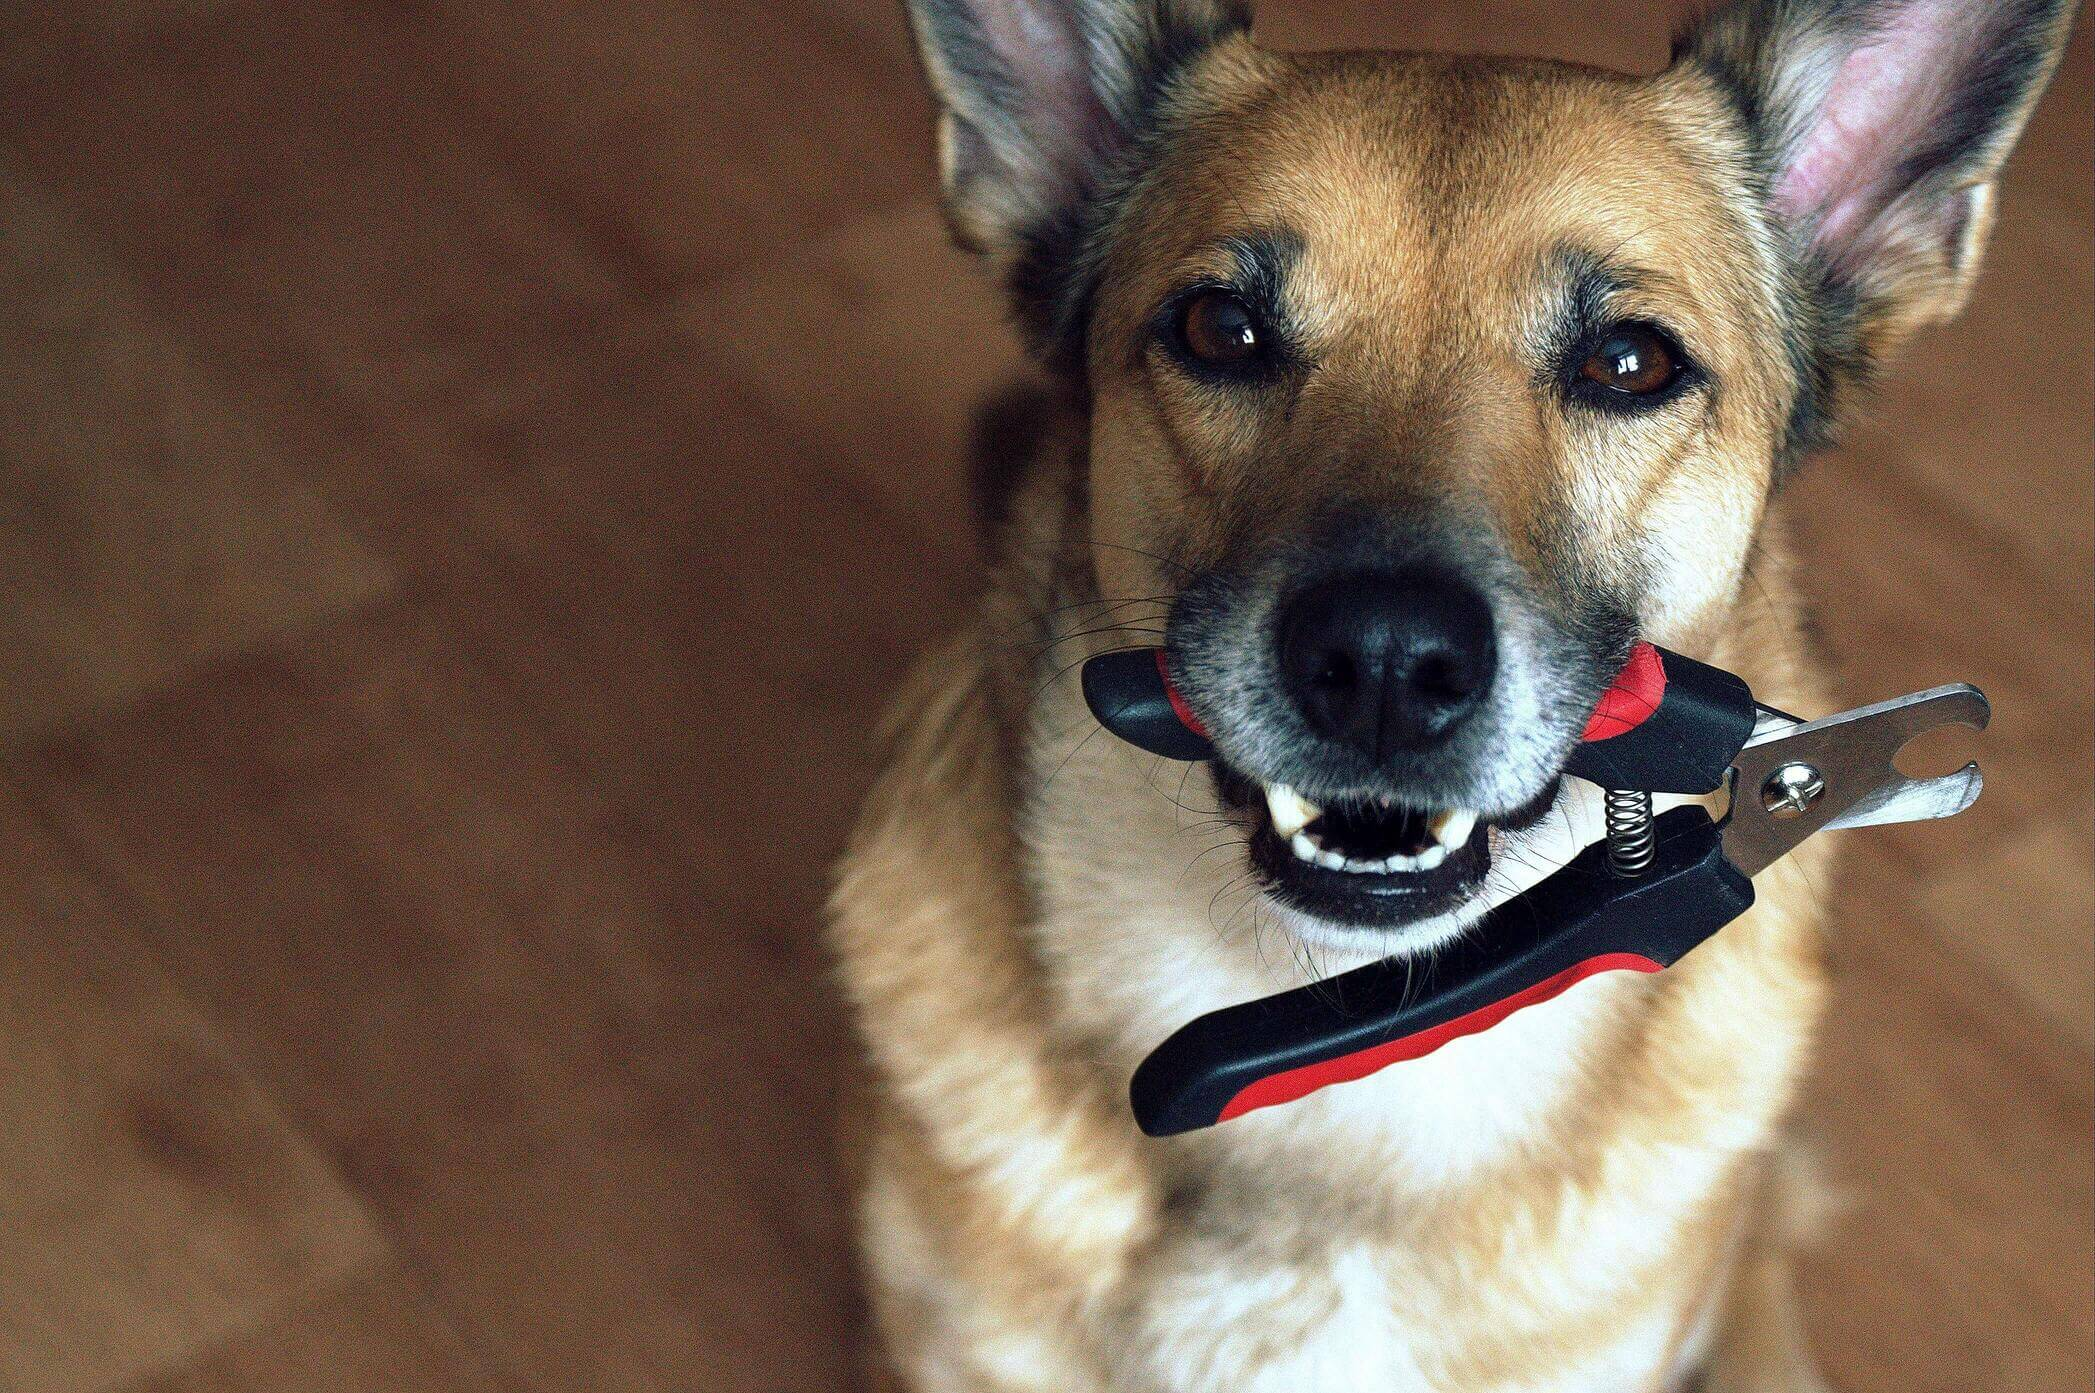 Dog holding nail clippers